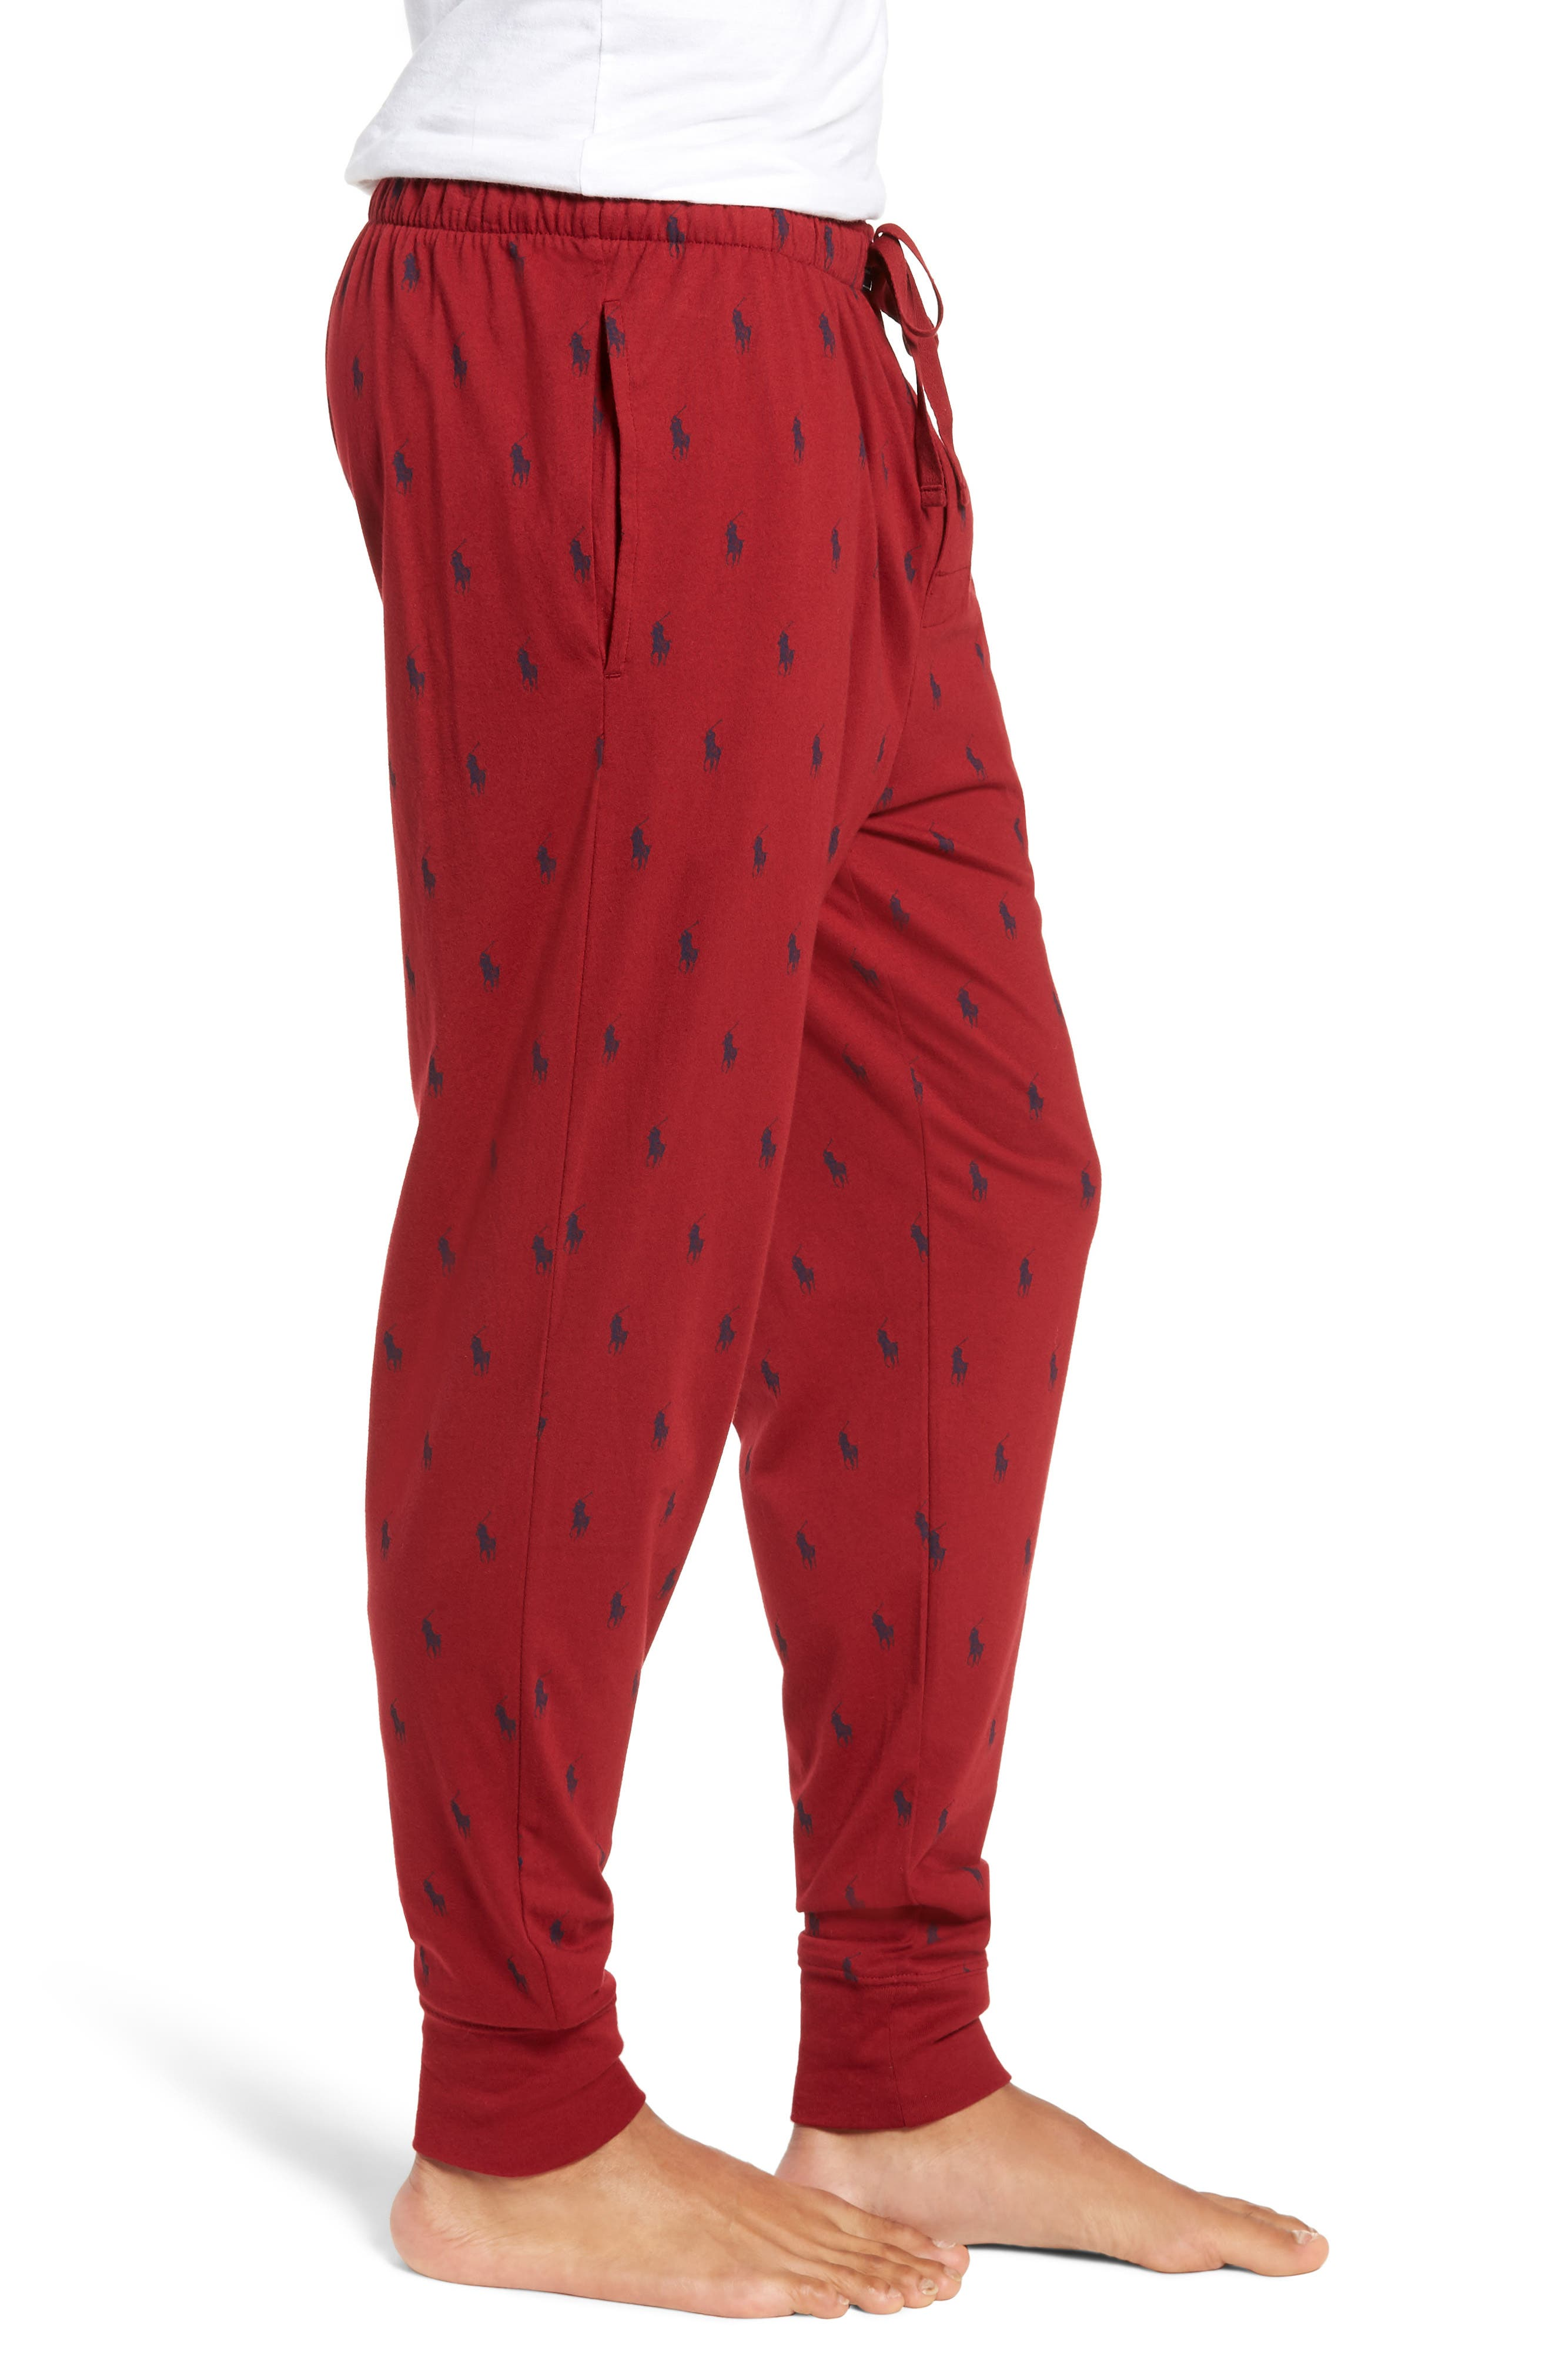 Cotton Lounge Pants,                             Alternate thumbnail 3, color,                             HOLIDAY RED/ CRUISE NAVY